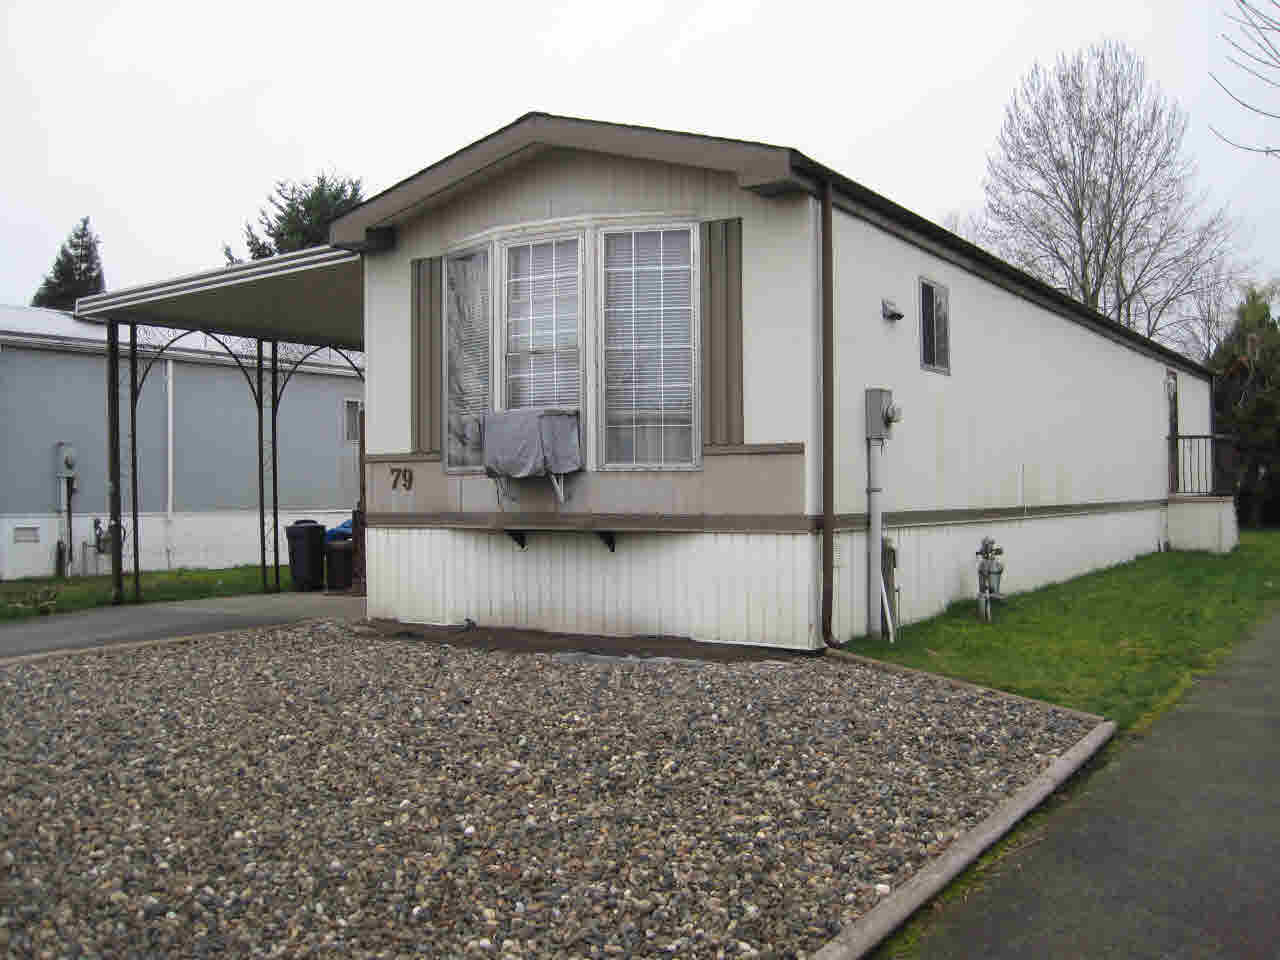 Main Photo: 79 145 KING EDWARD STREET in : Maillardville Manufactured Home for sale : MLS® # V816945